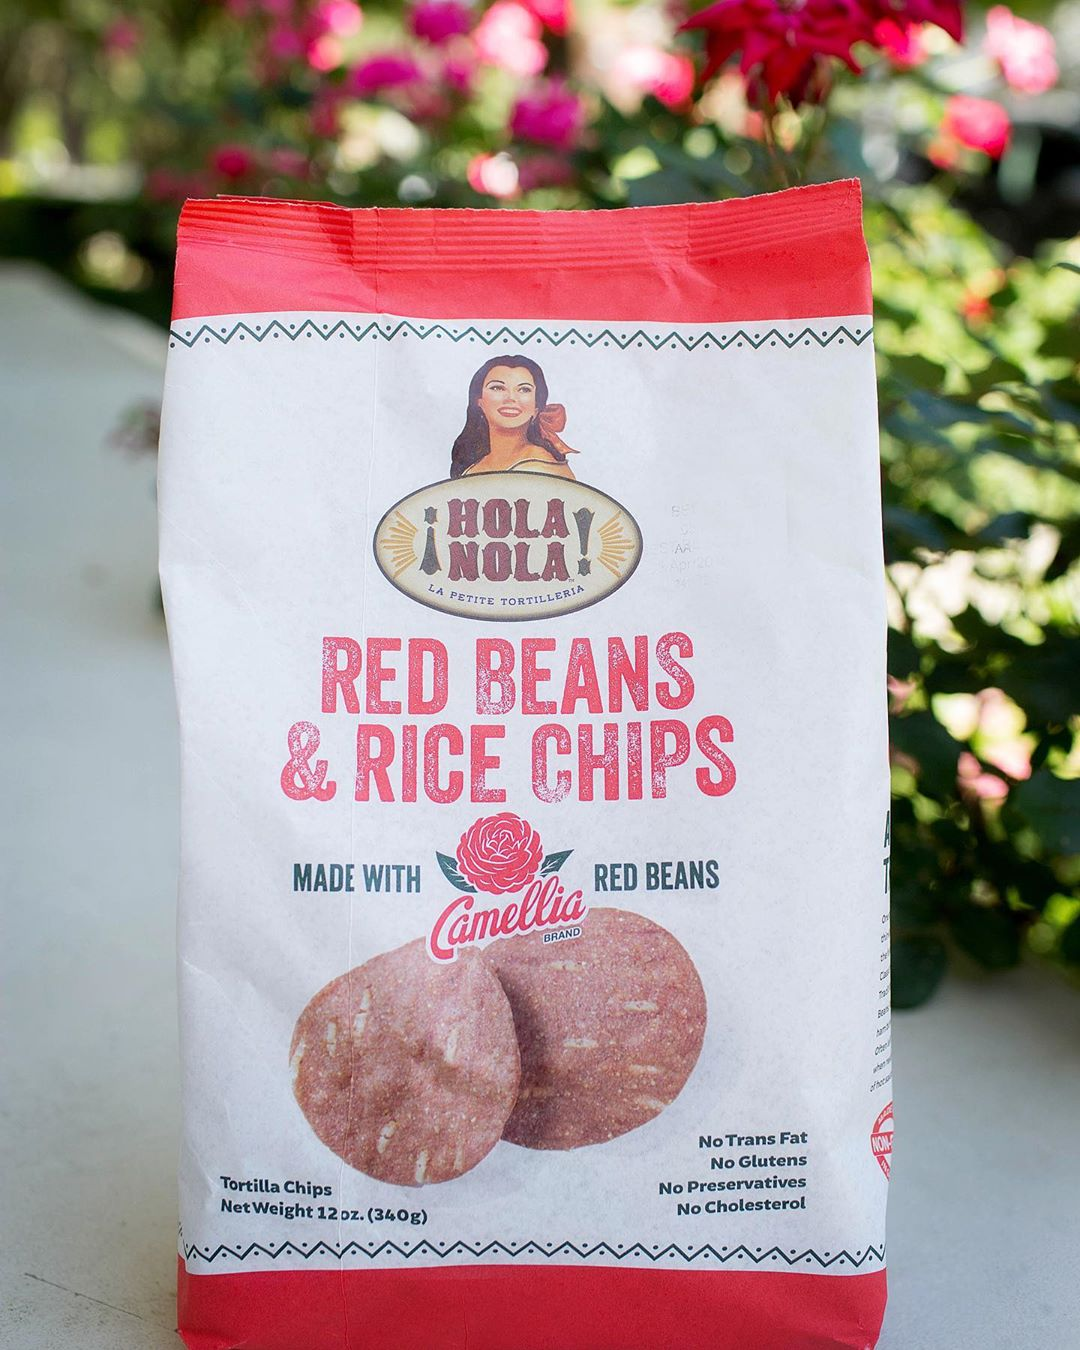 Now you can have #redbeansandrice any time you're craving them with these chips from @holanolafoods…